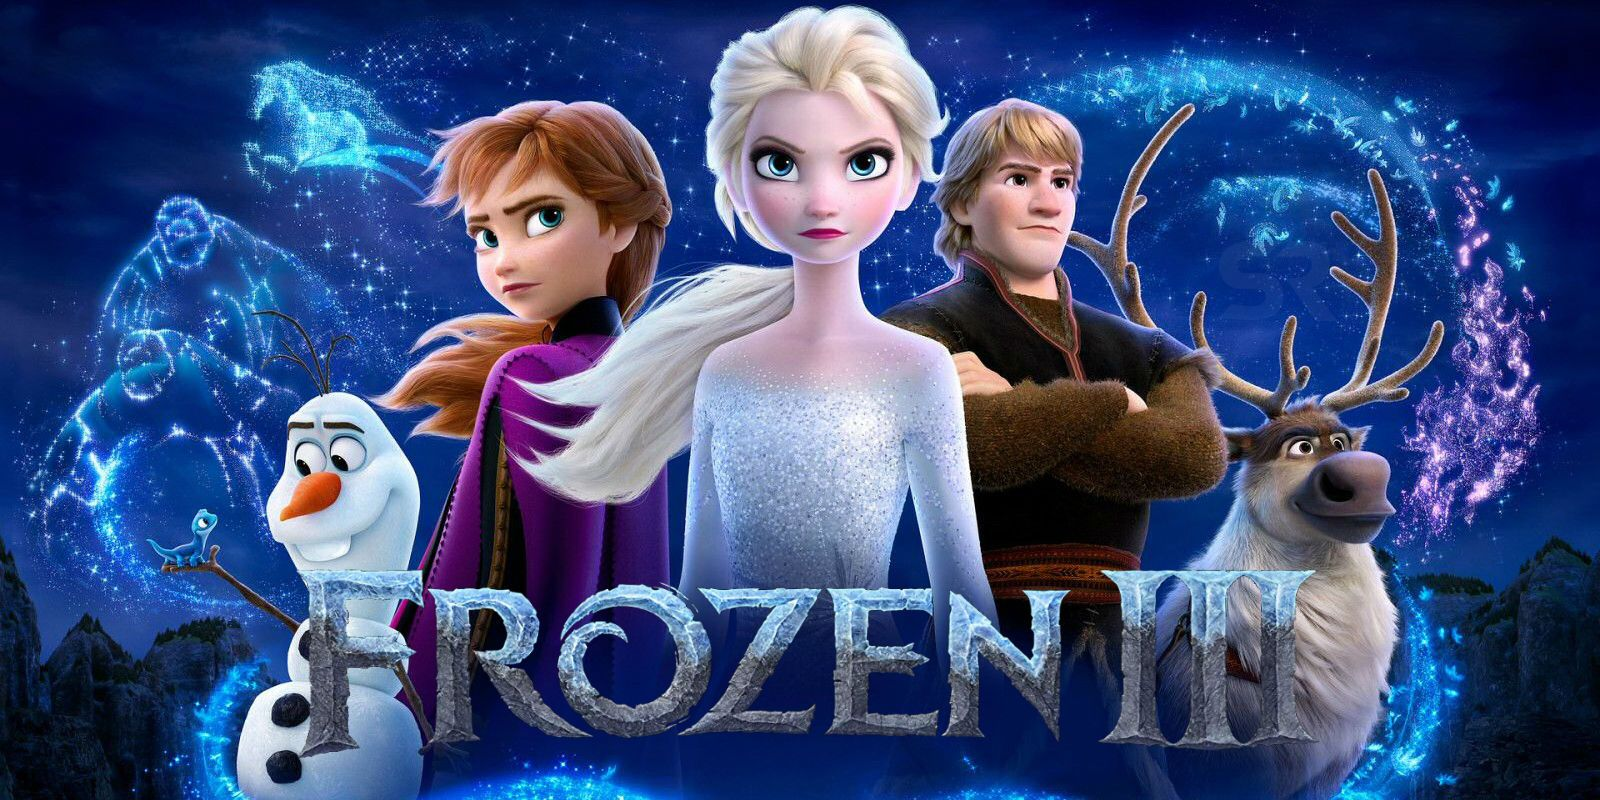 Frozen 3 Movie: Here's What We Know So Far!